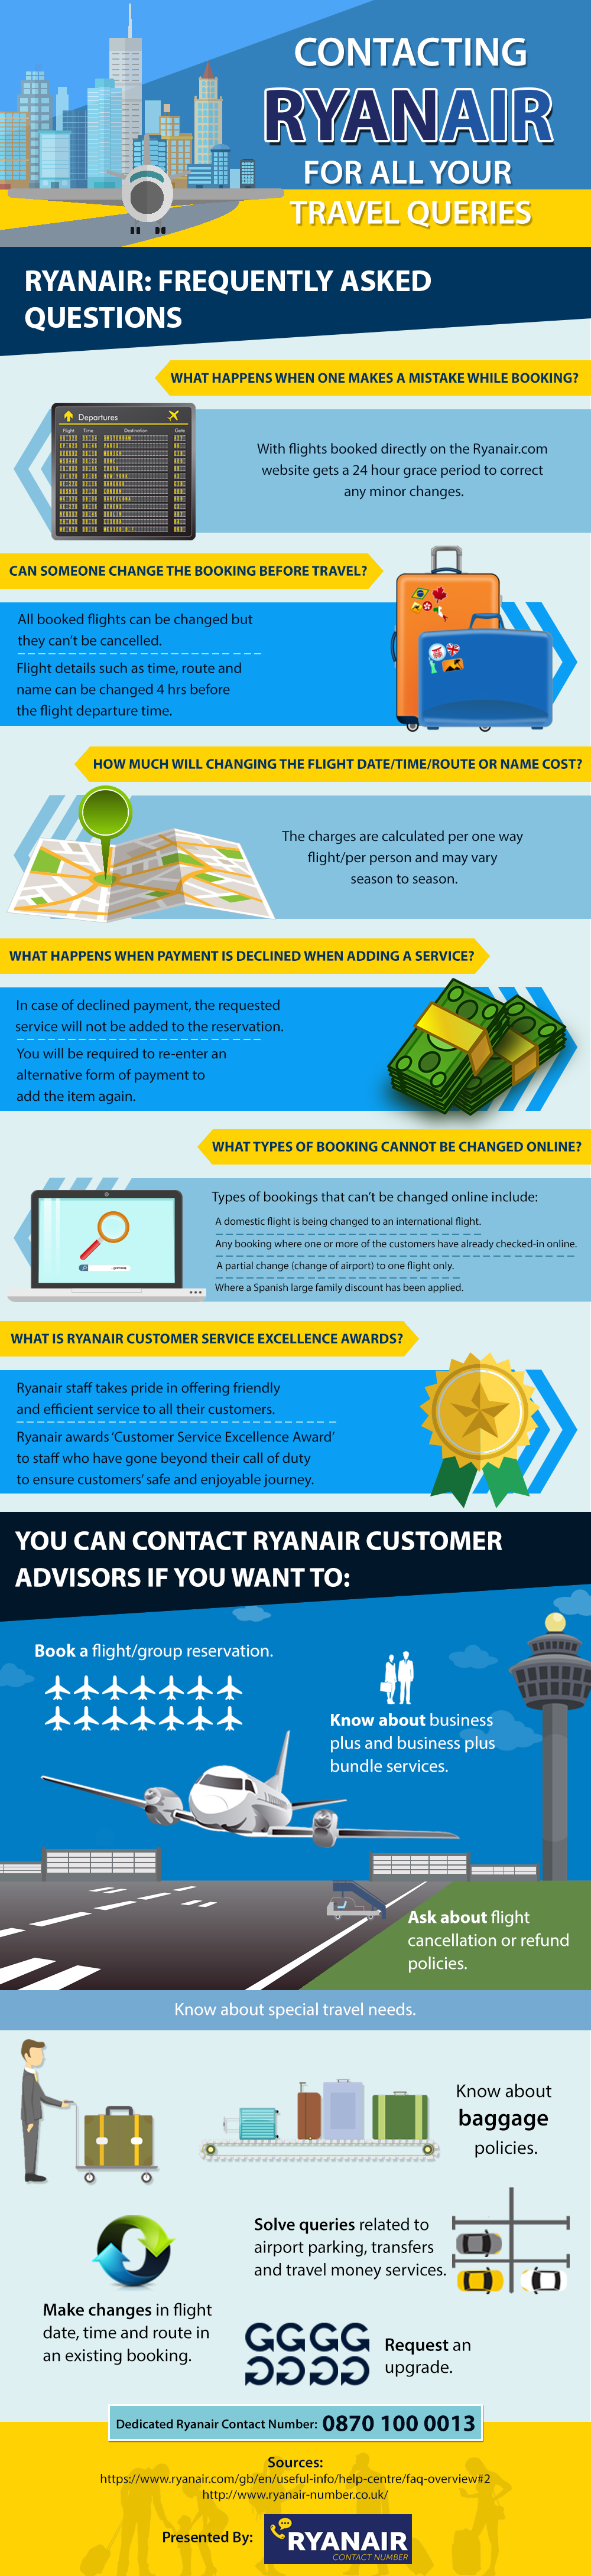 Ryanair Airlines Faqs Infographic